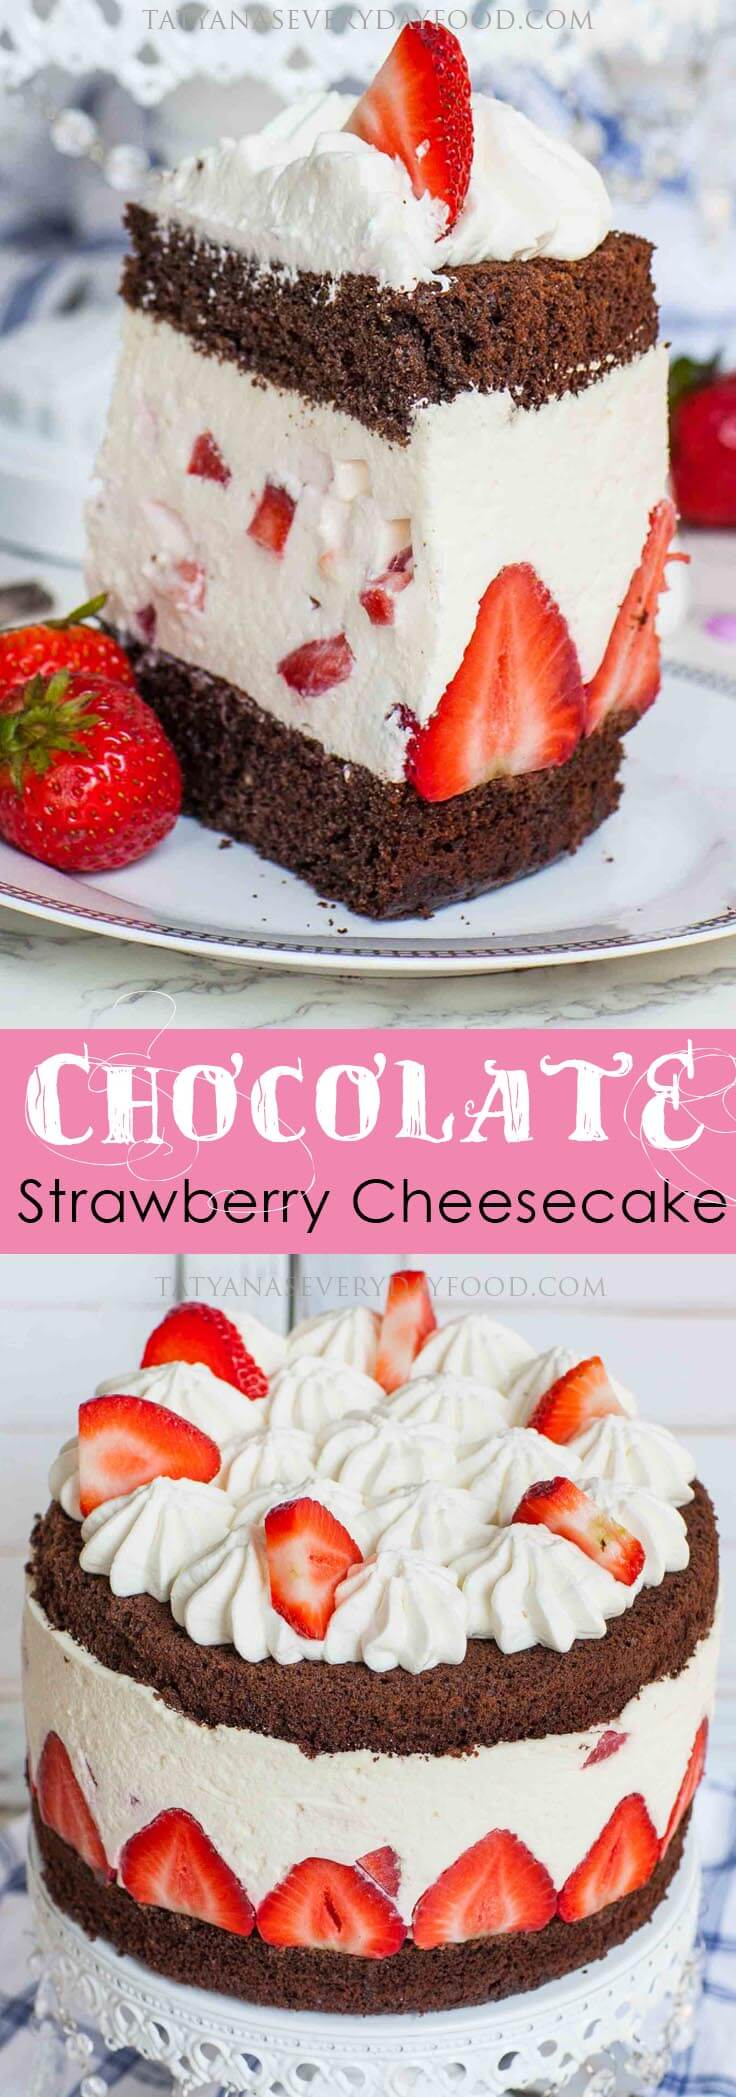 Chocolate Strawberry Fraisier Cheesecake Recipe with video